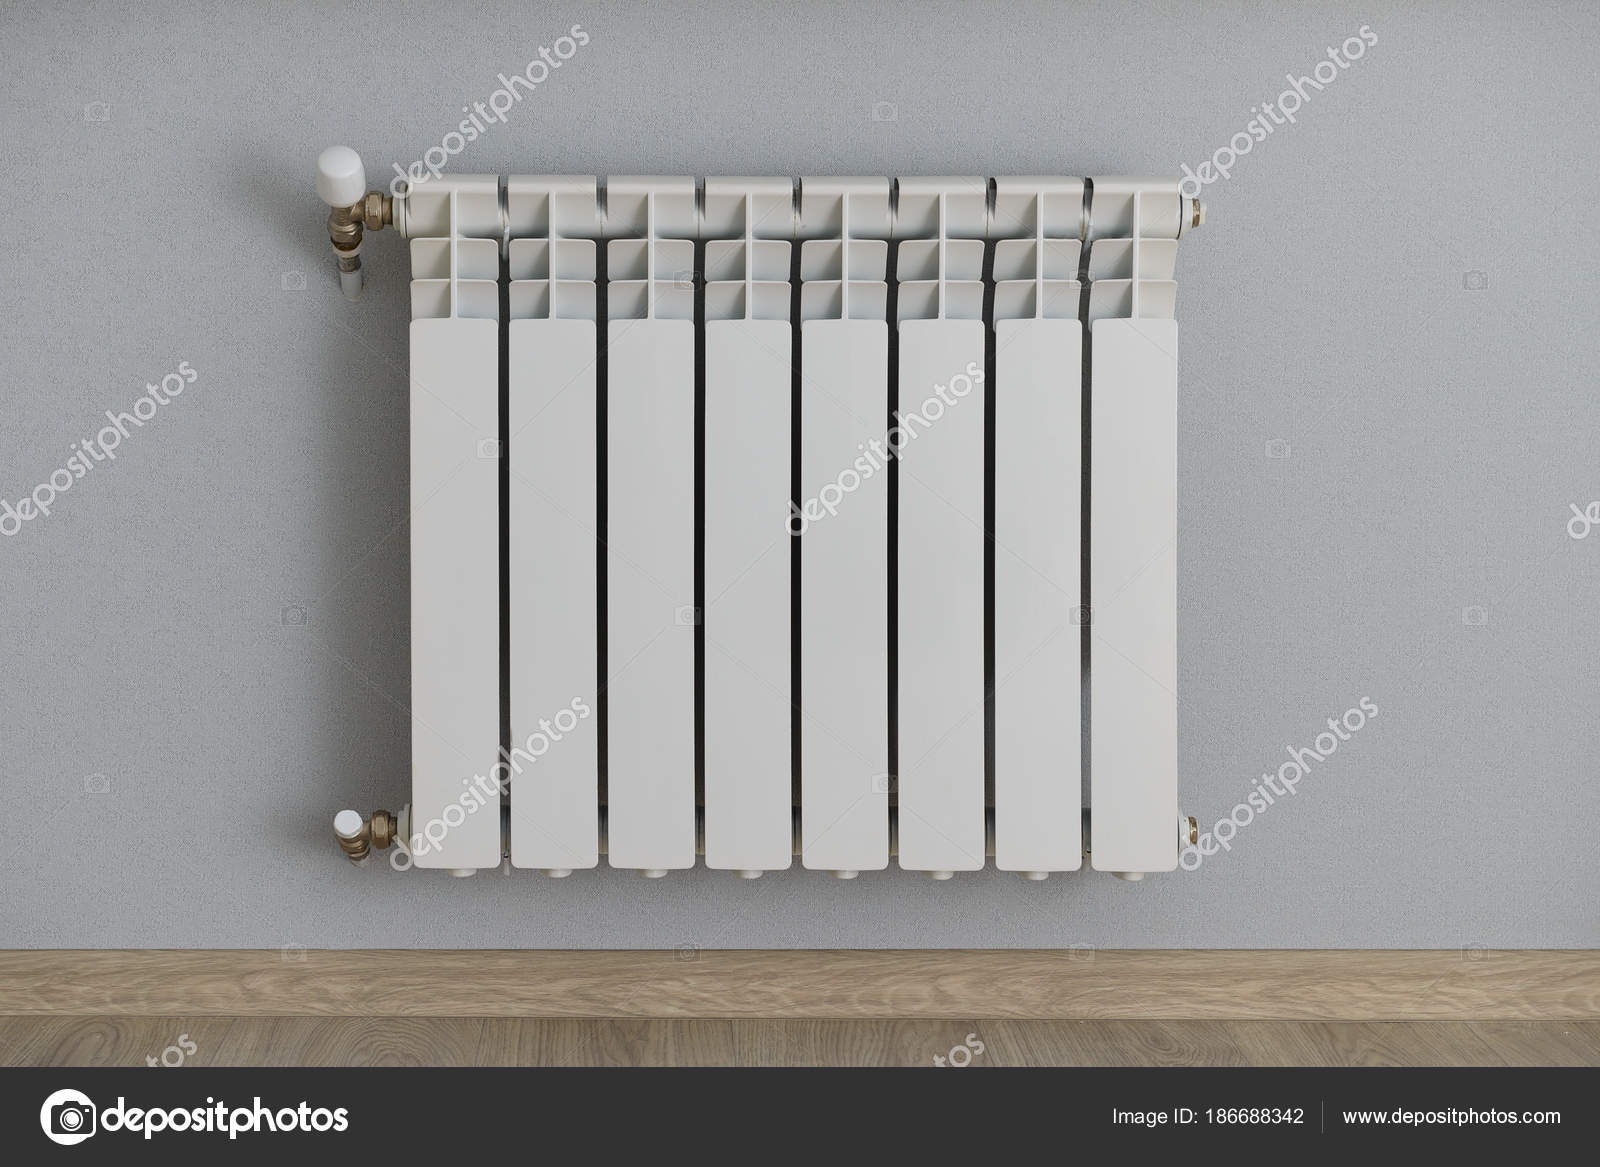 How To Wallpaper A Wall With A Radiator Many Hd Wallpaper